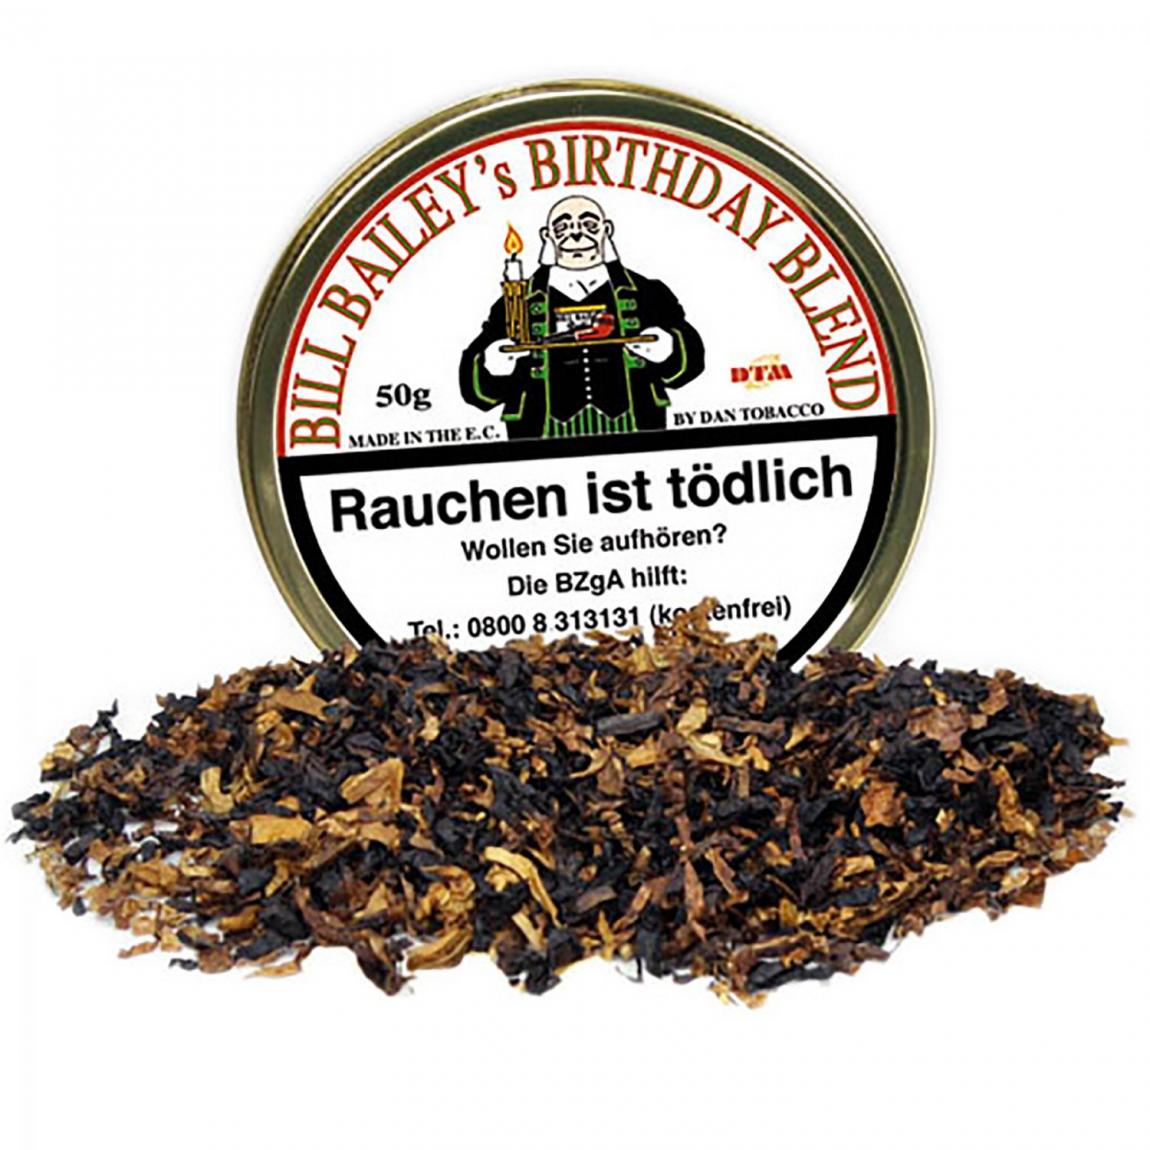 Bill Bailey's Birthday Blend - frischer Genuss mit Blue Curaçao Flavour